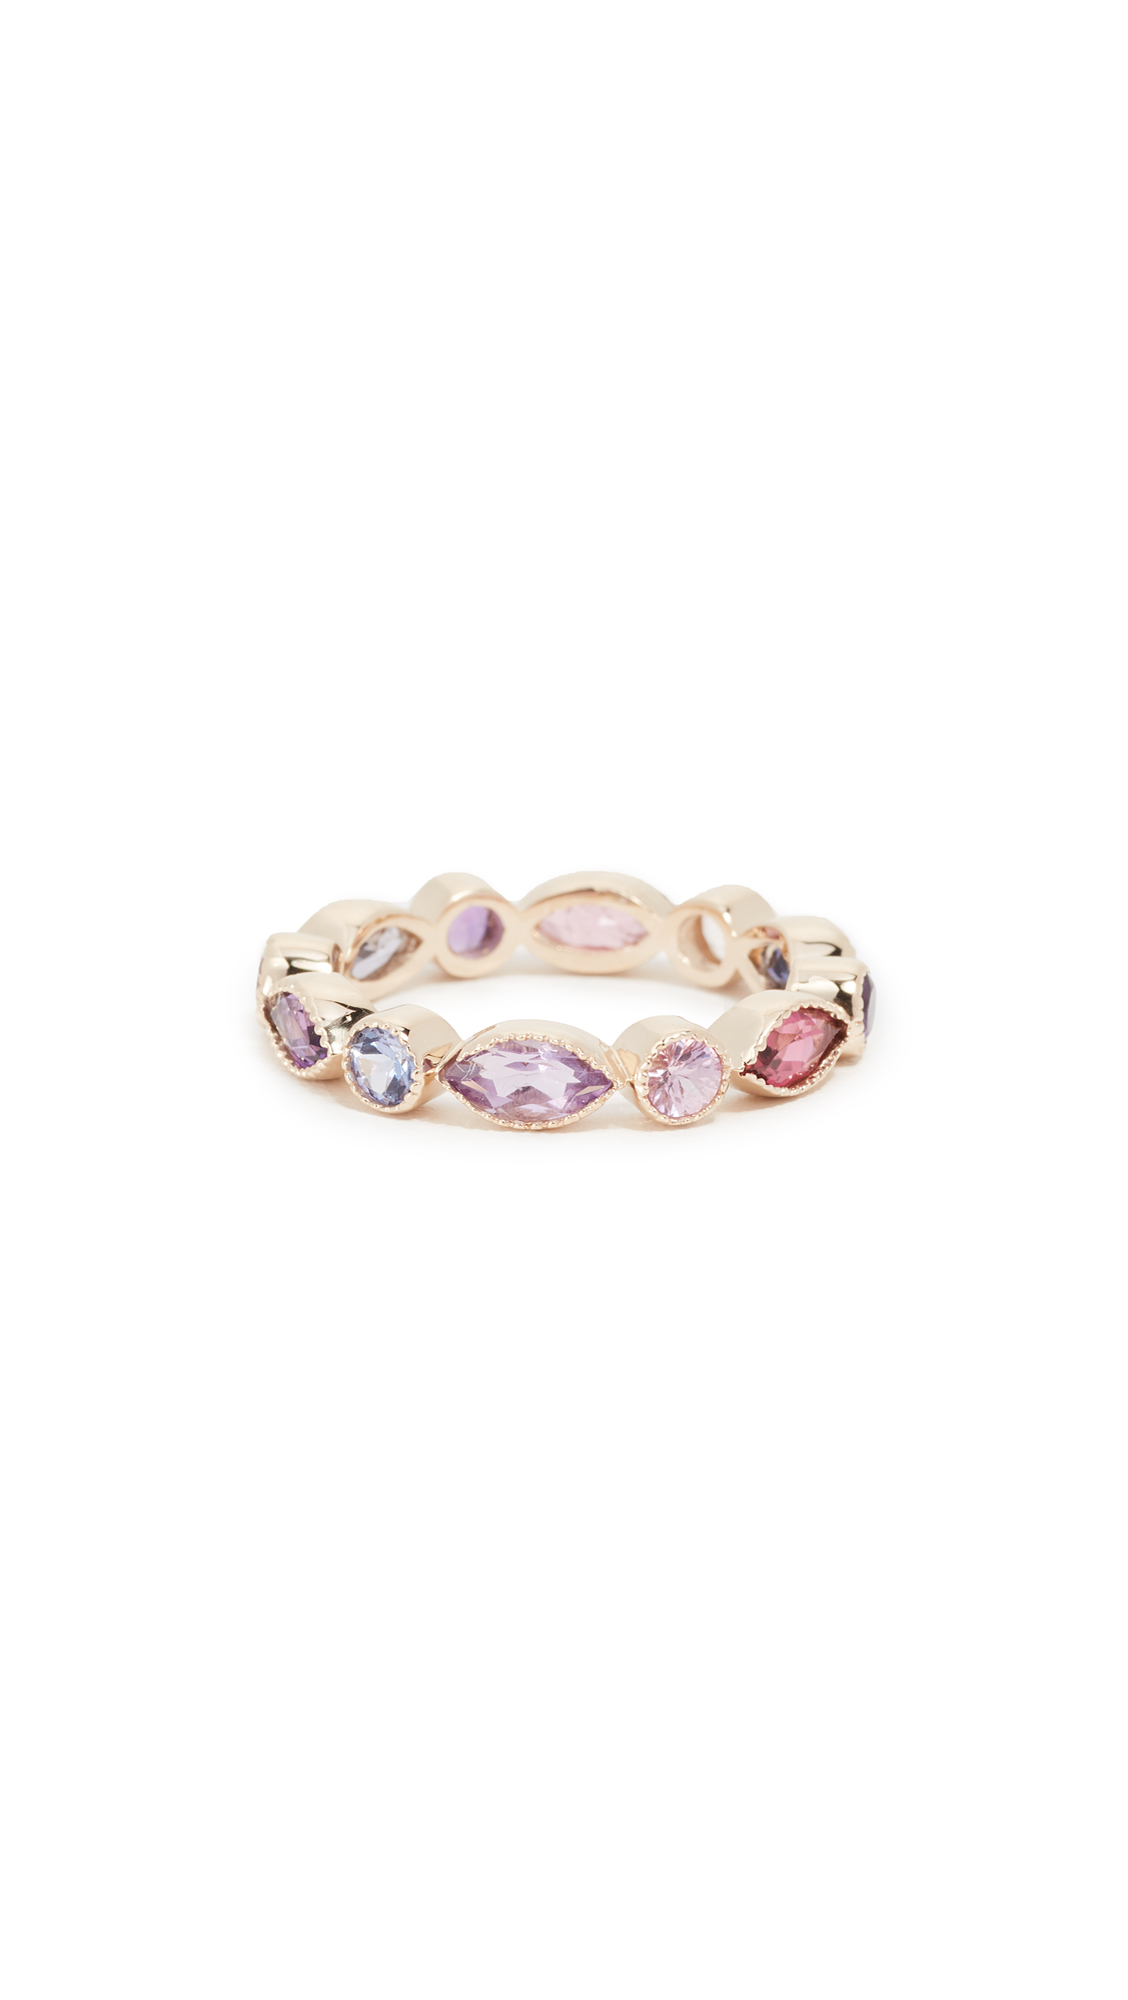 EDEN PRESLEY 14K GOLD MARQUISE ROUND ETERNITY BAND